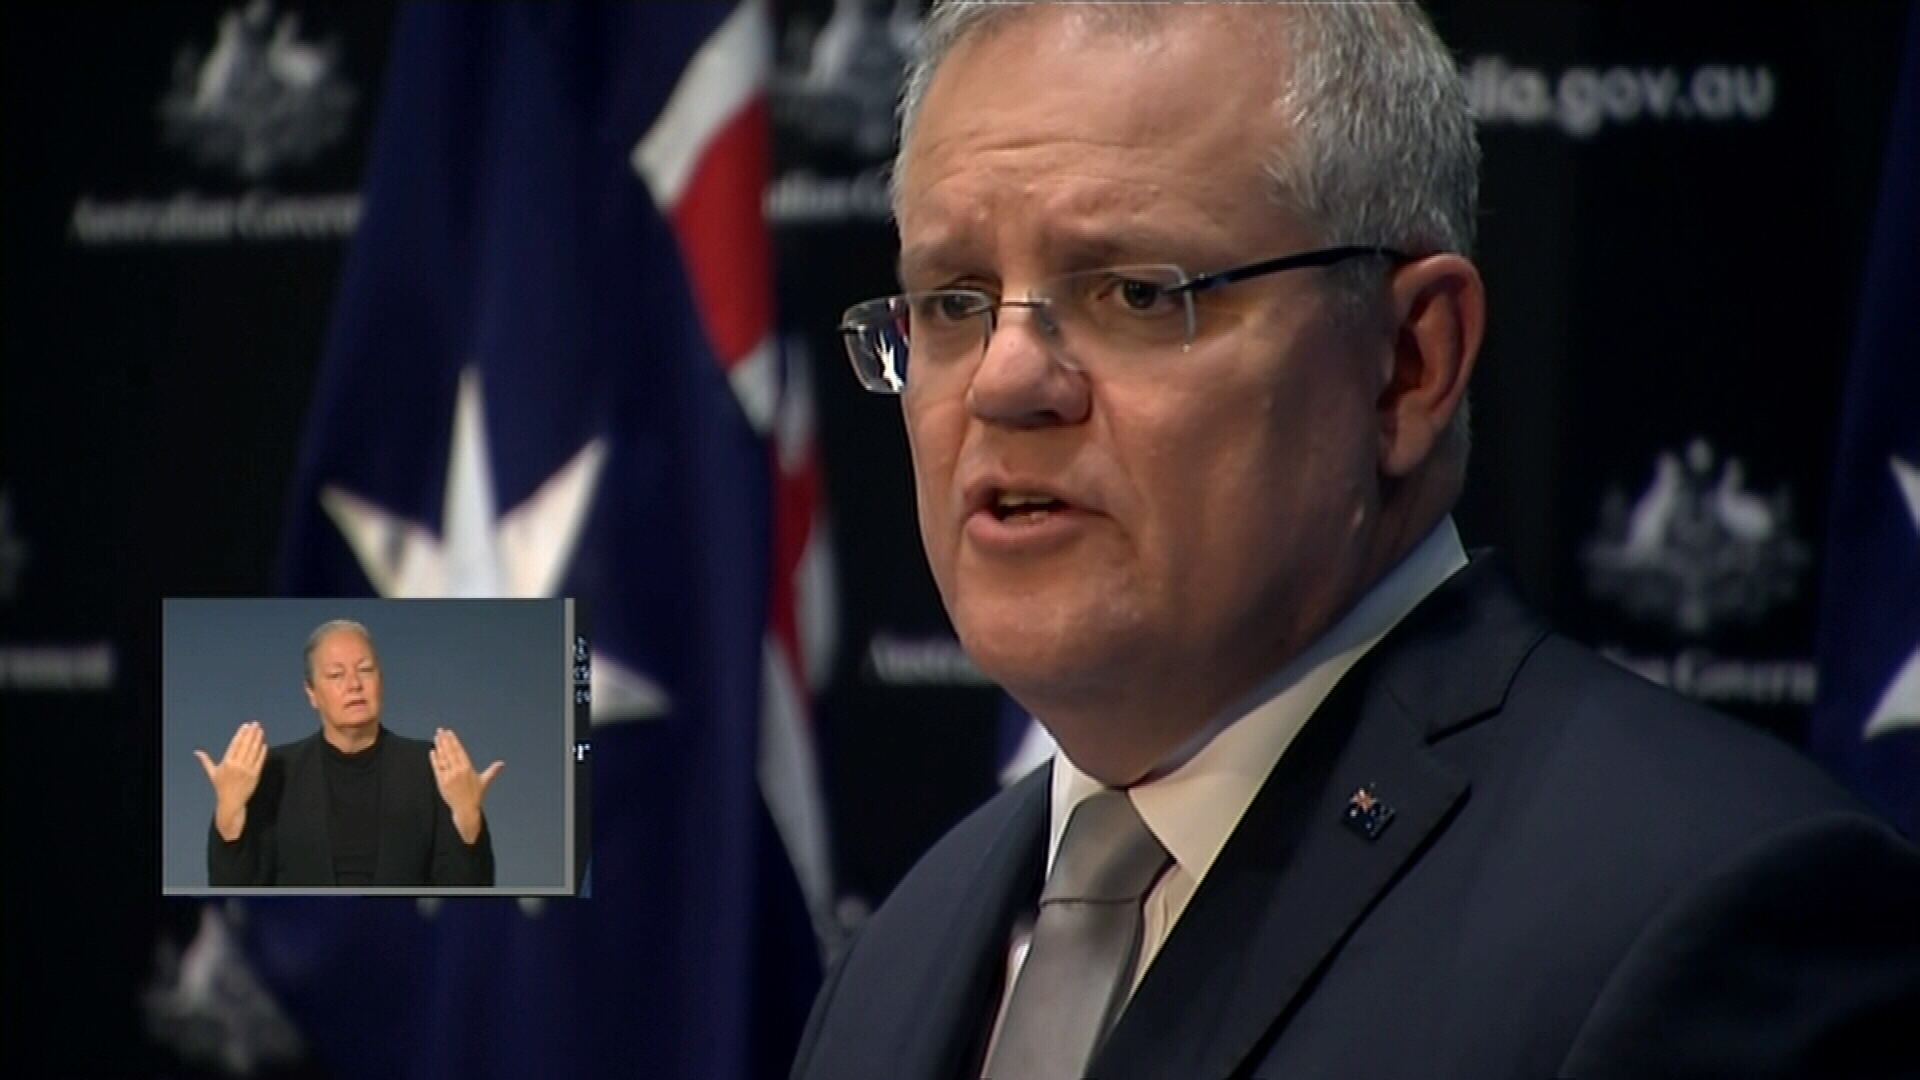 Coronavirus: PM says 'we are making significant progress'